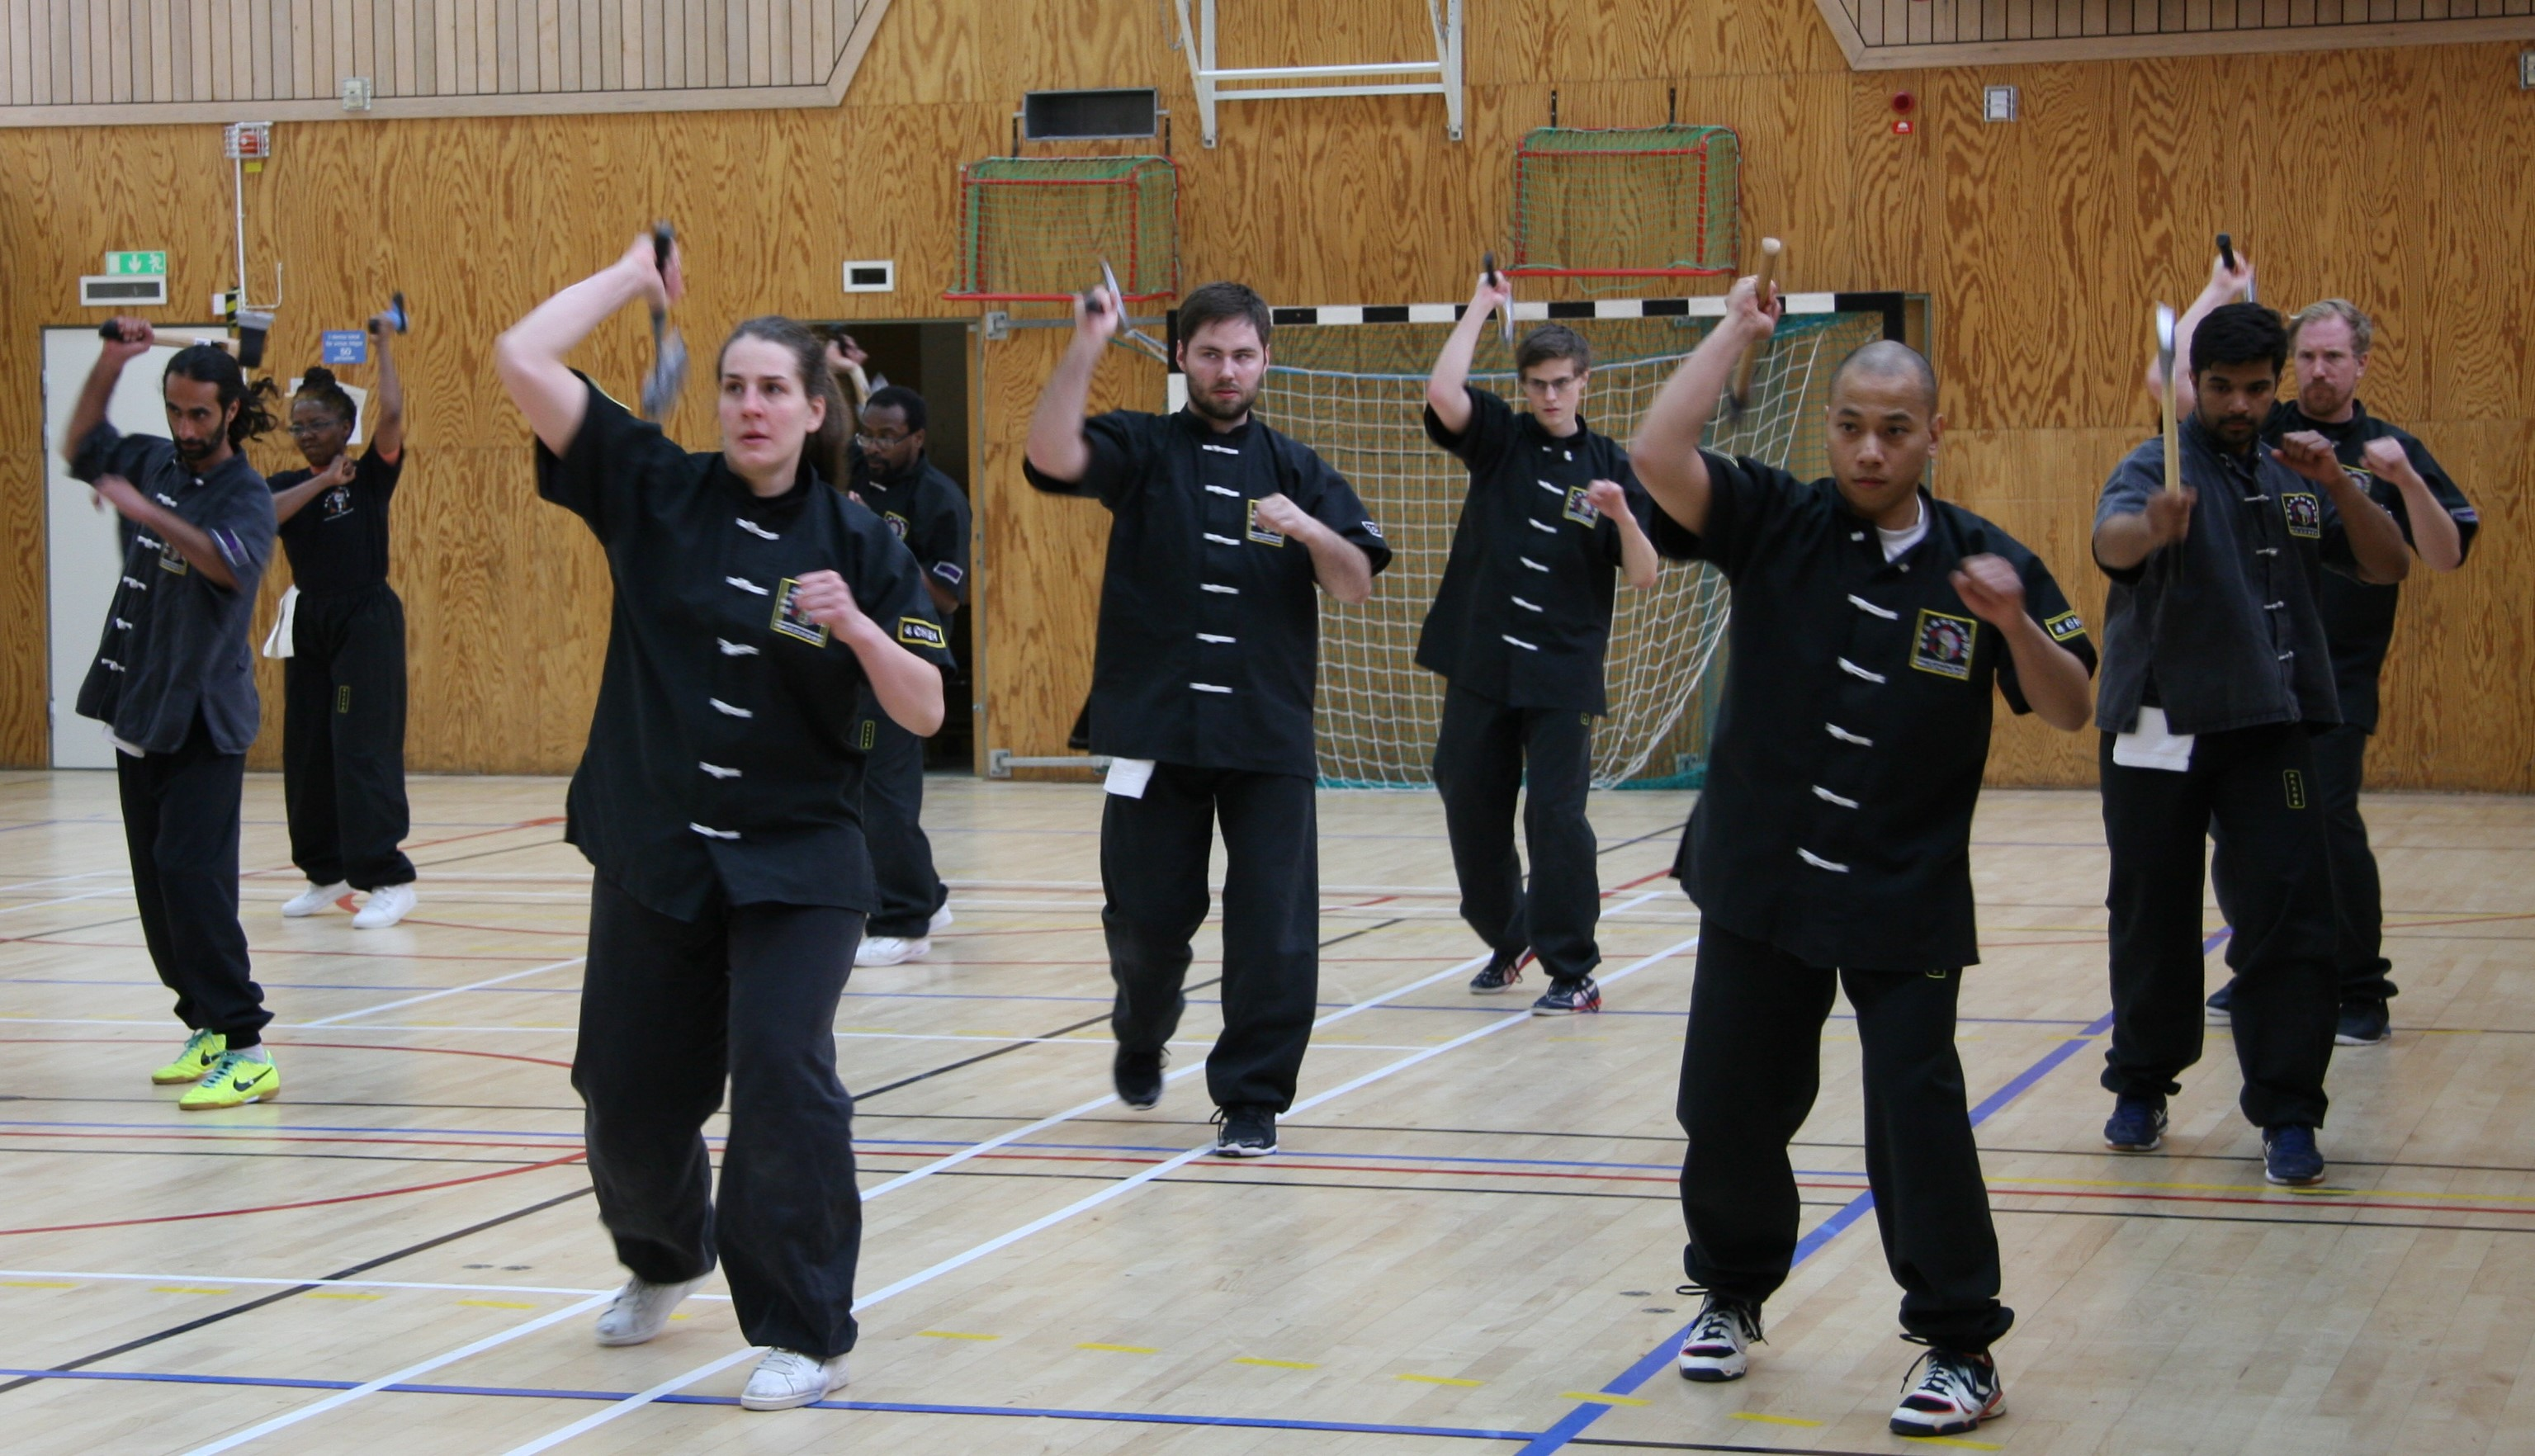 Louis Linn O Shin Chuen Union axe close combat techniques week-end course held in Stockholm on April 22, 2017, lead by the chief instructor Louis Linn.